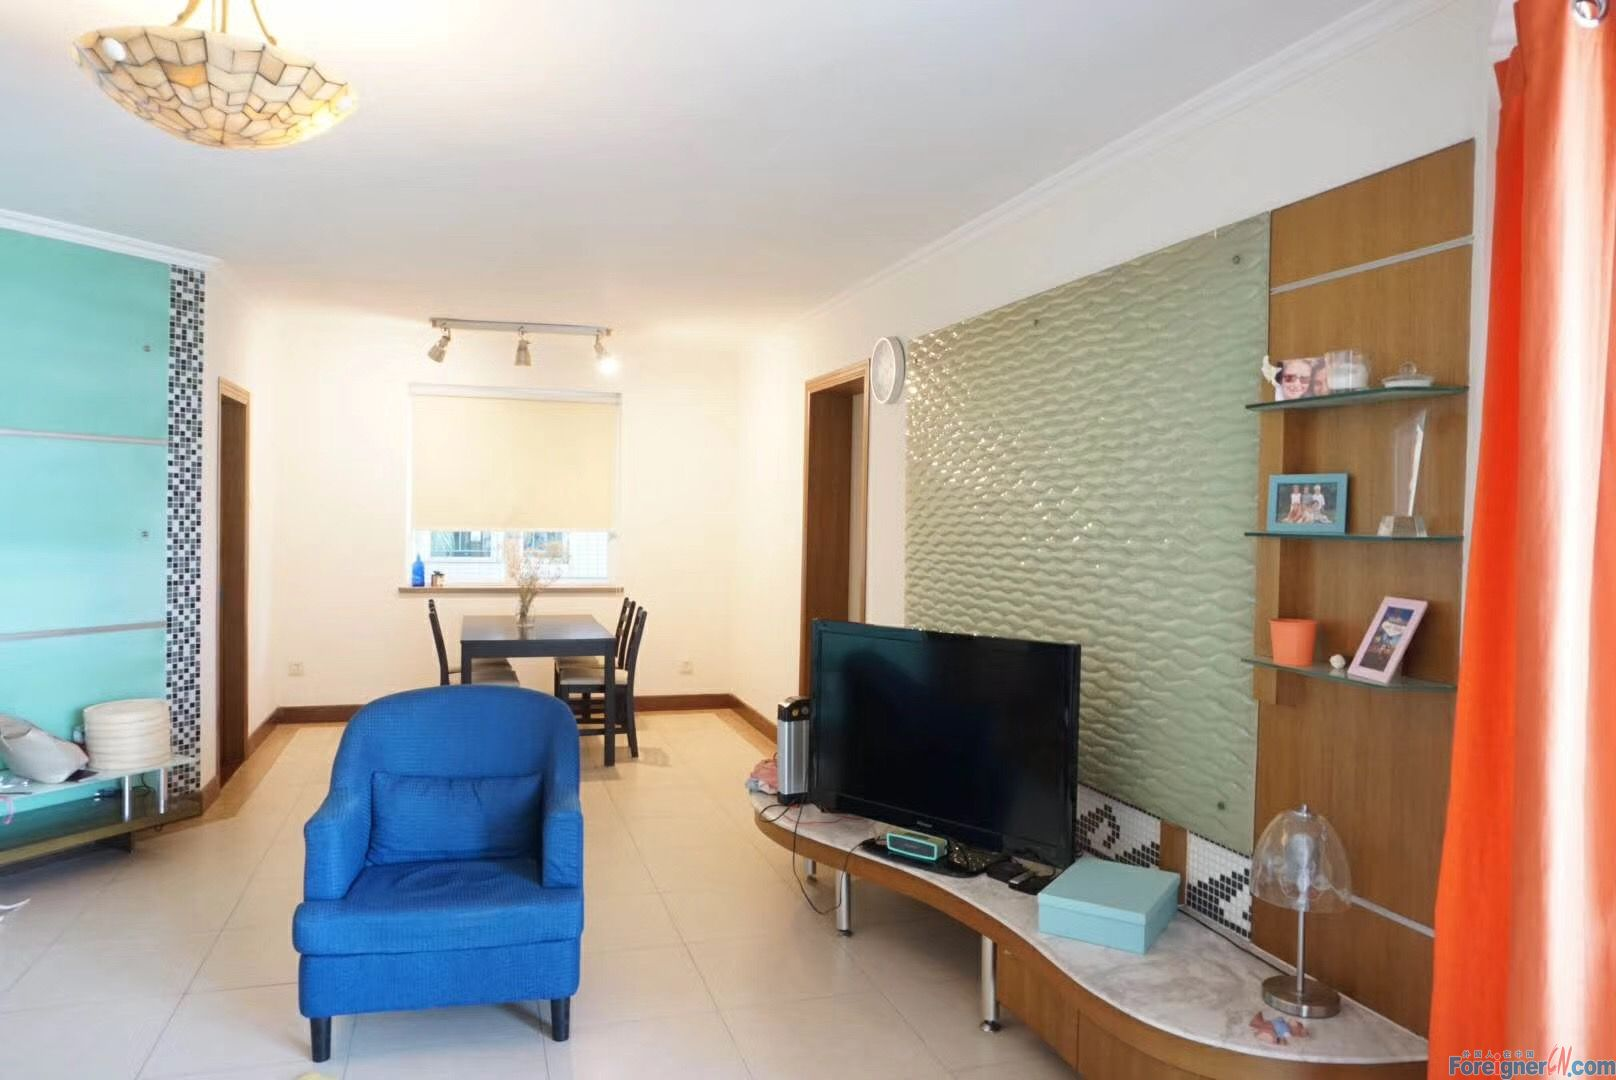 3BR apr with river view with good price